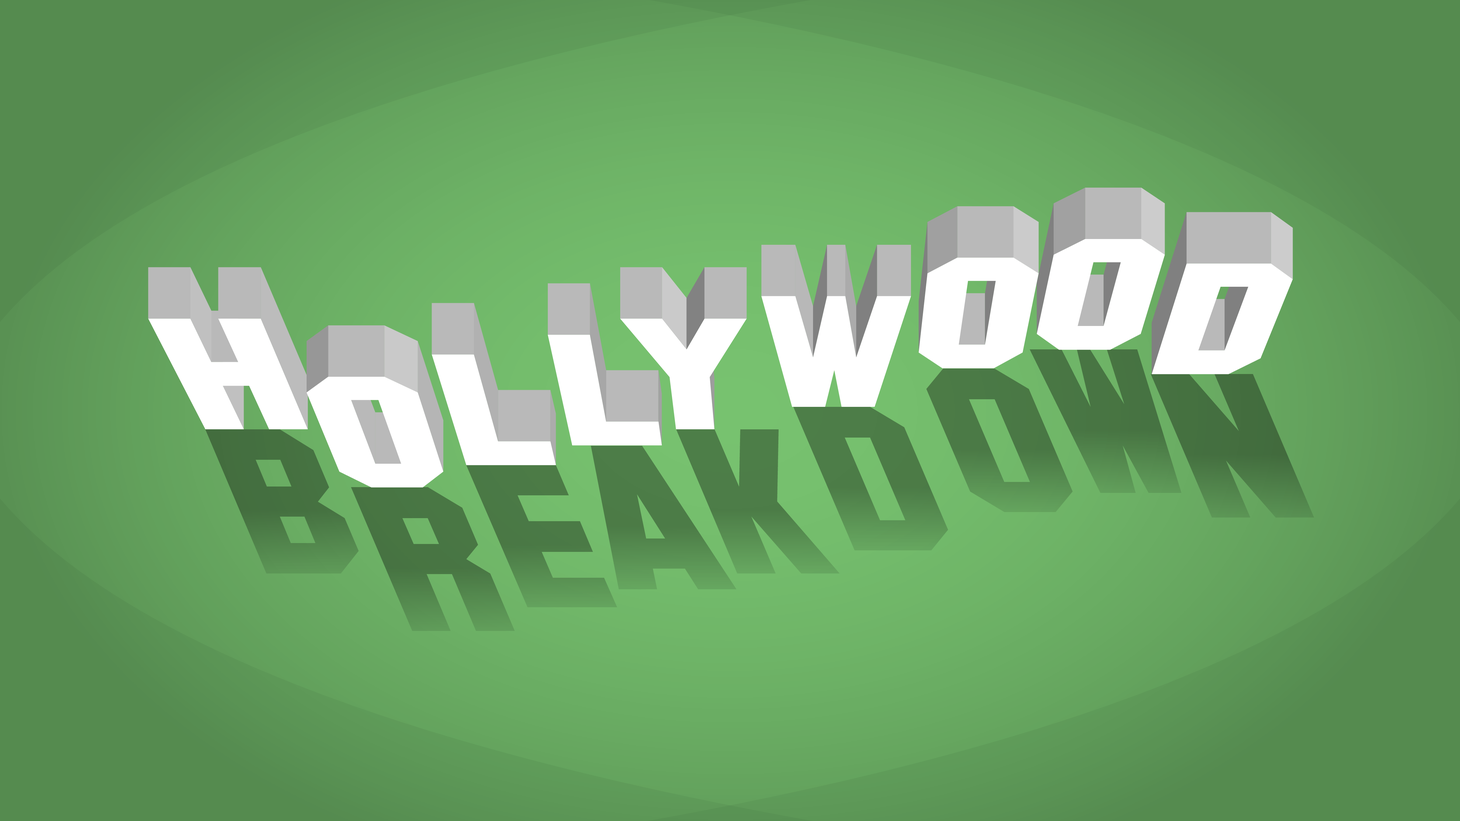 Kim Masters, host of KCRW's The Business, breaks down Hollywood's top stories.